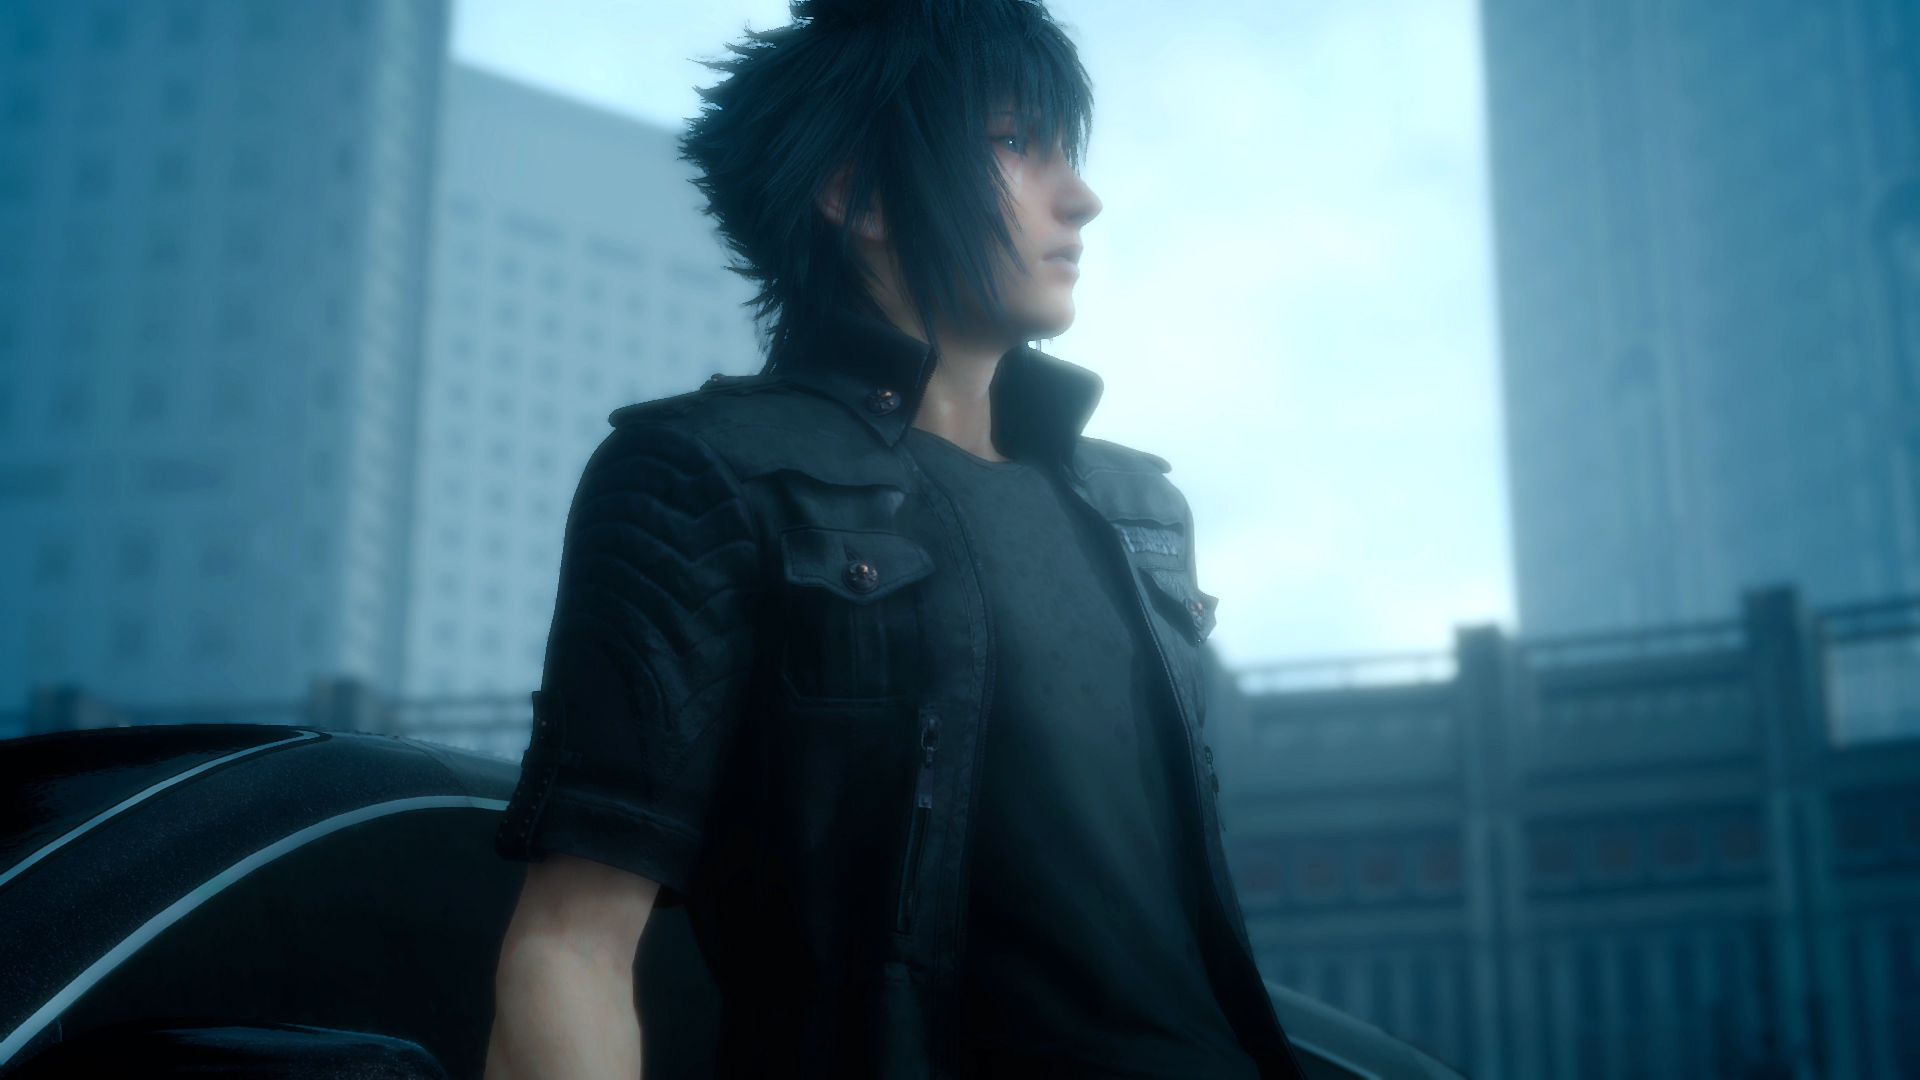 final fantasy xv was worth the wait - the verge